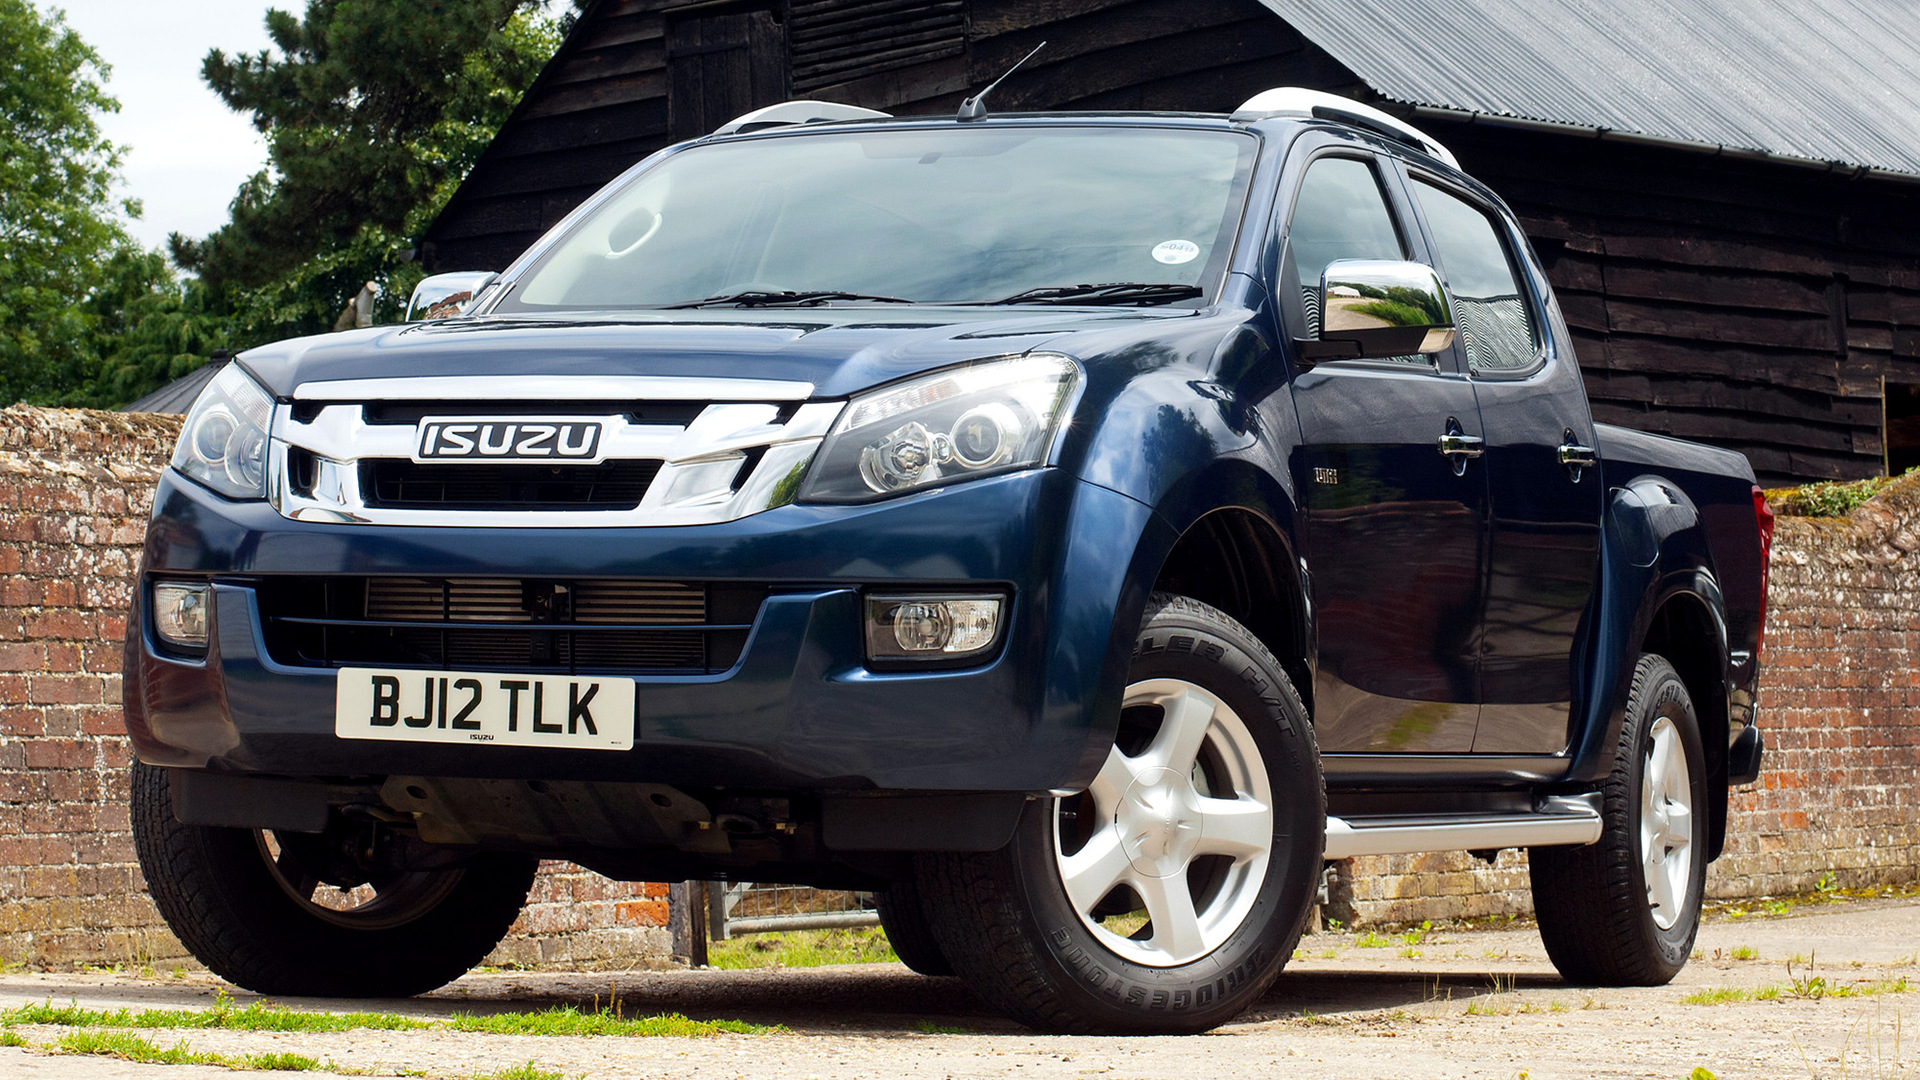 isuzu d max double cab 2012 uk wallpapers and hd images. Black Bedroom Furniture Sets. Home Design Ideas